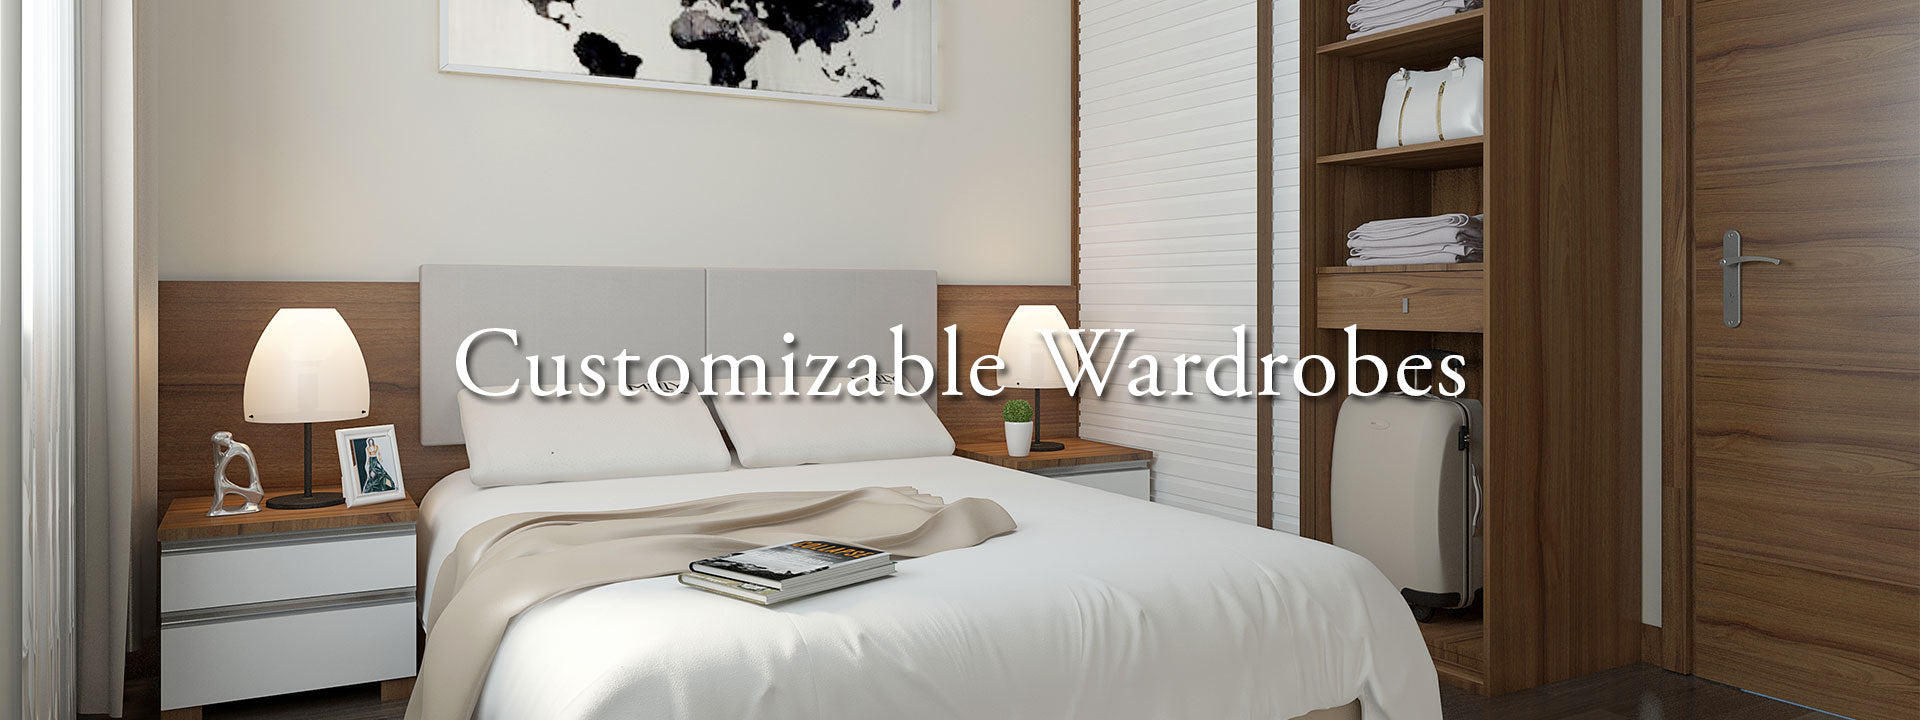 M And S Bedroom Furniture Pr Custom Made To Measure Furniture Picketrail Singapores